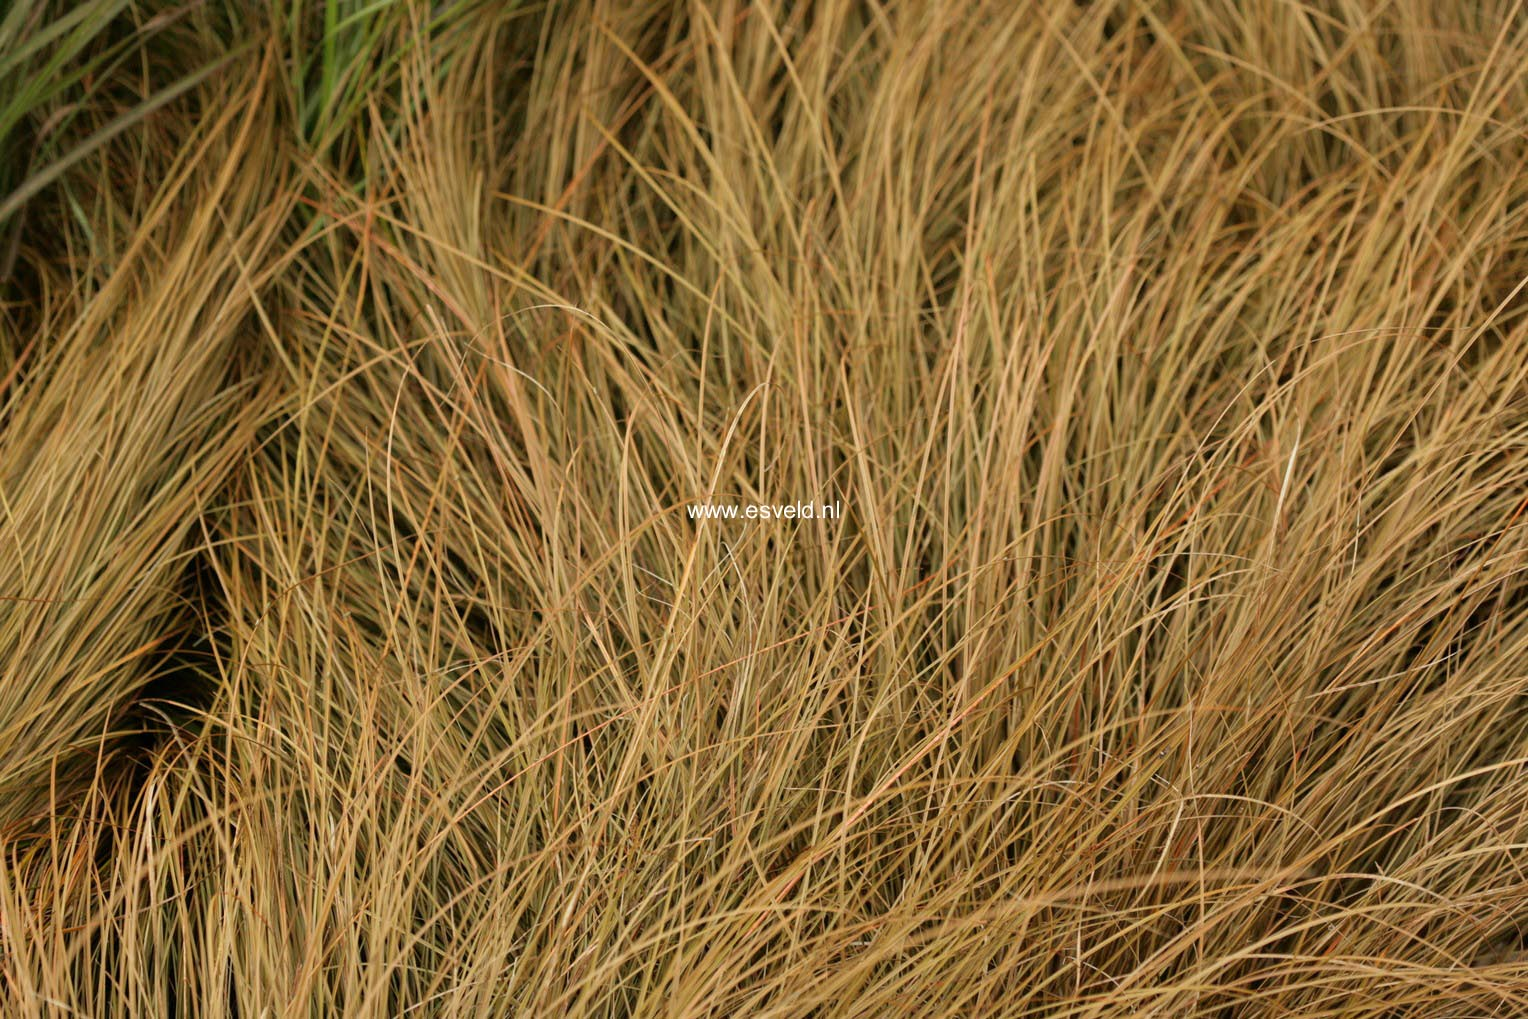 Carex flagellifera